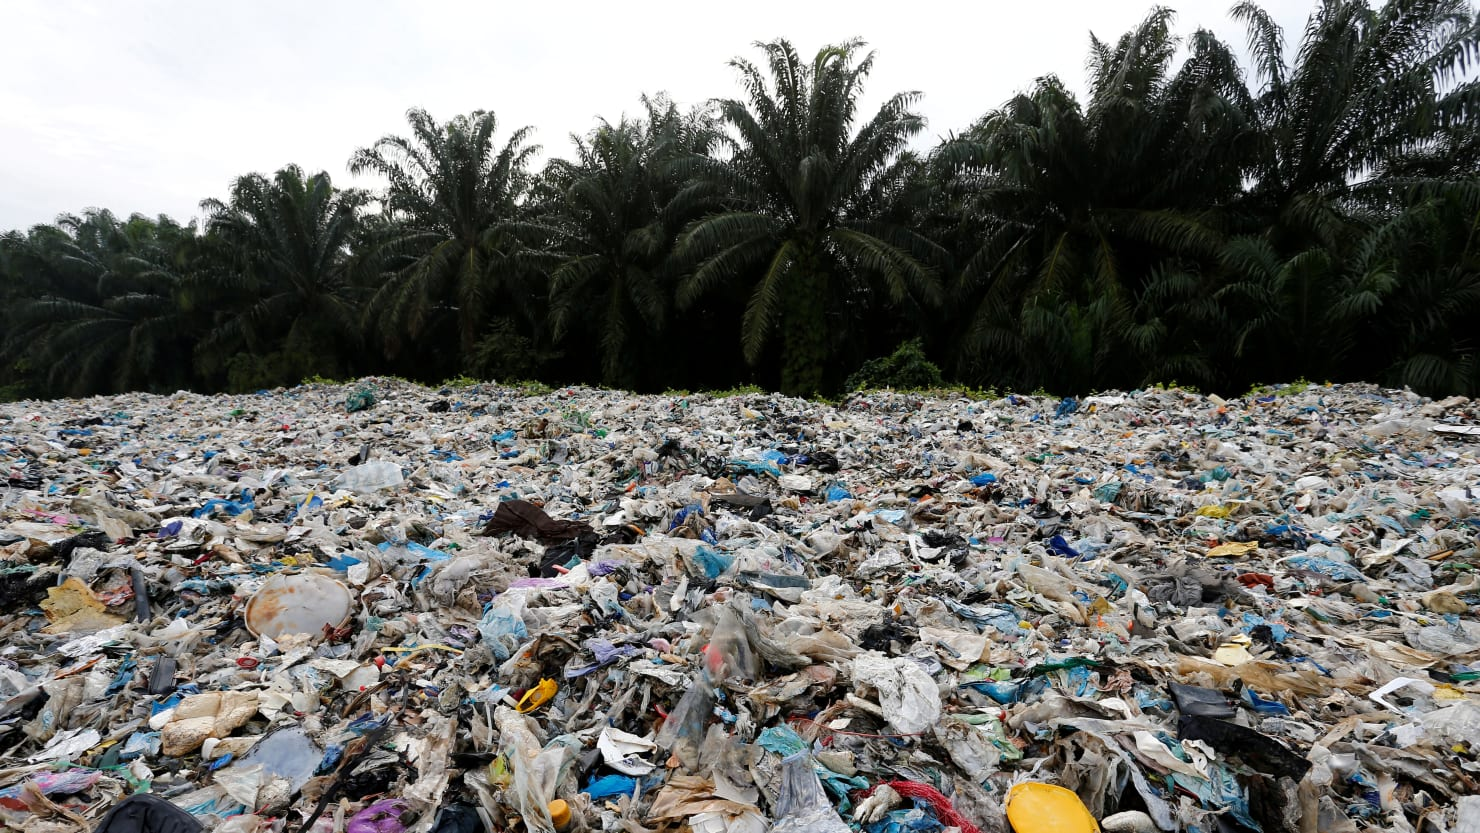 U.S. Ships 'One Million Tons' of Plastic Waste to Poor Countries Every Year